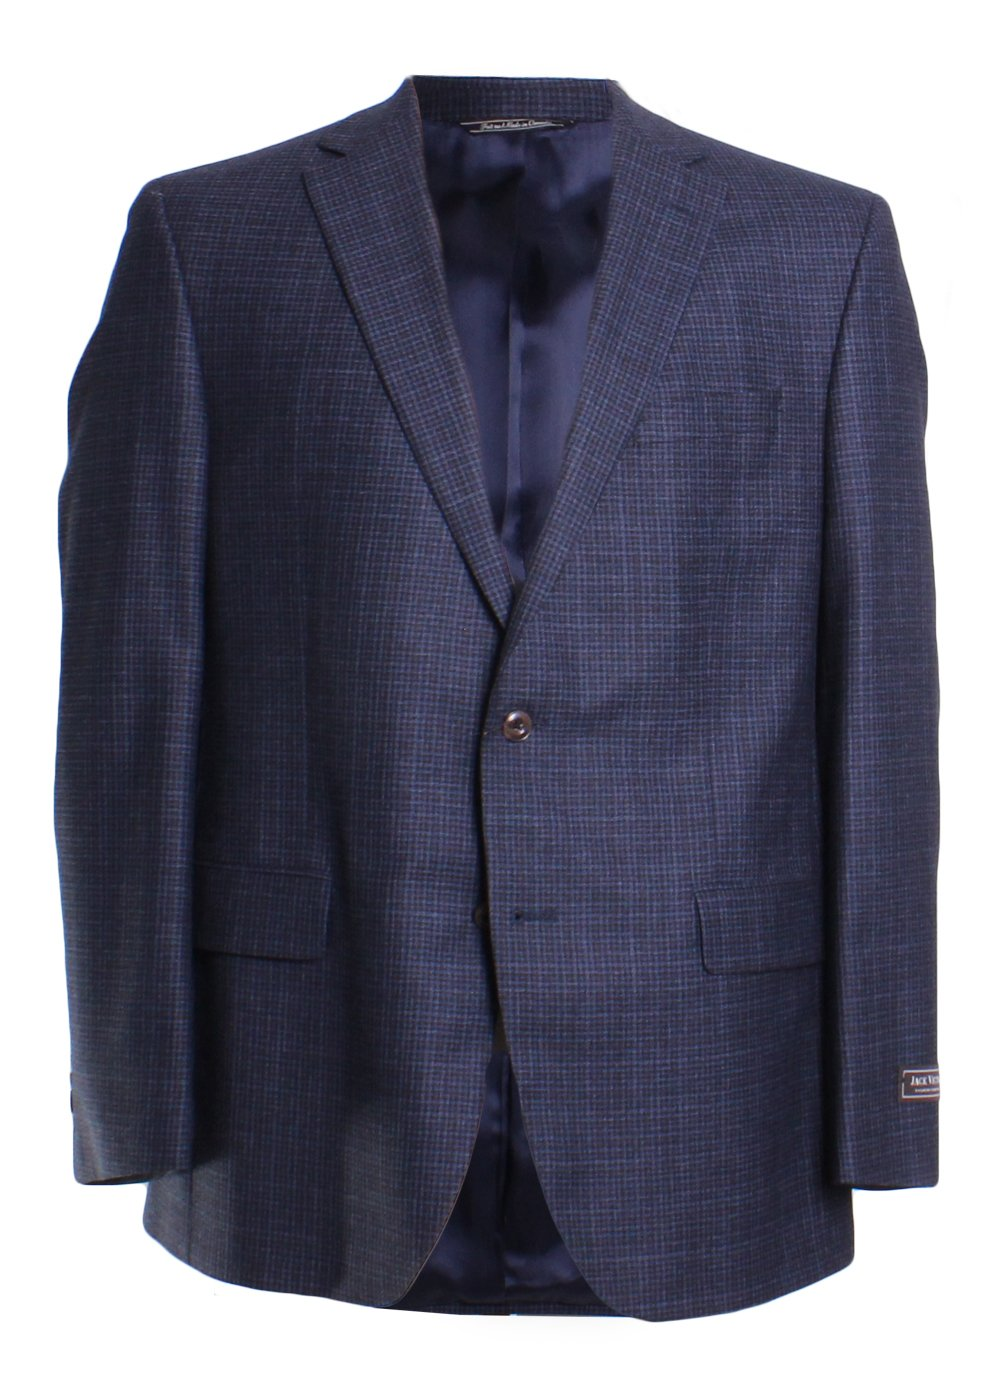 Jack Victor Sportcoat 52L As Shown